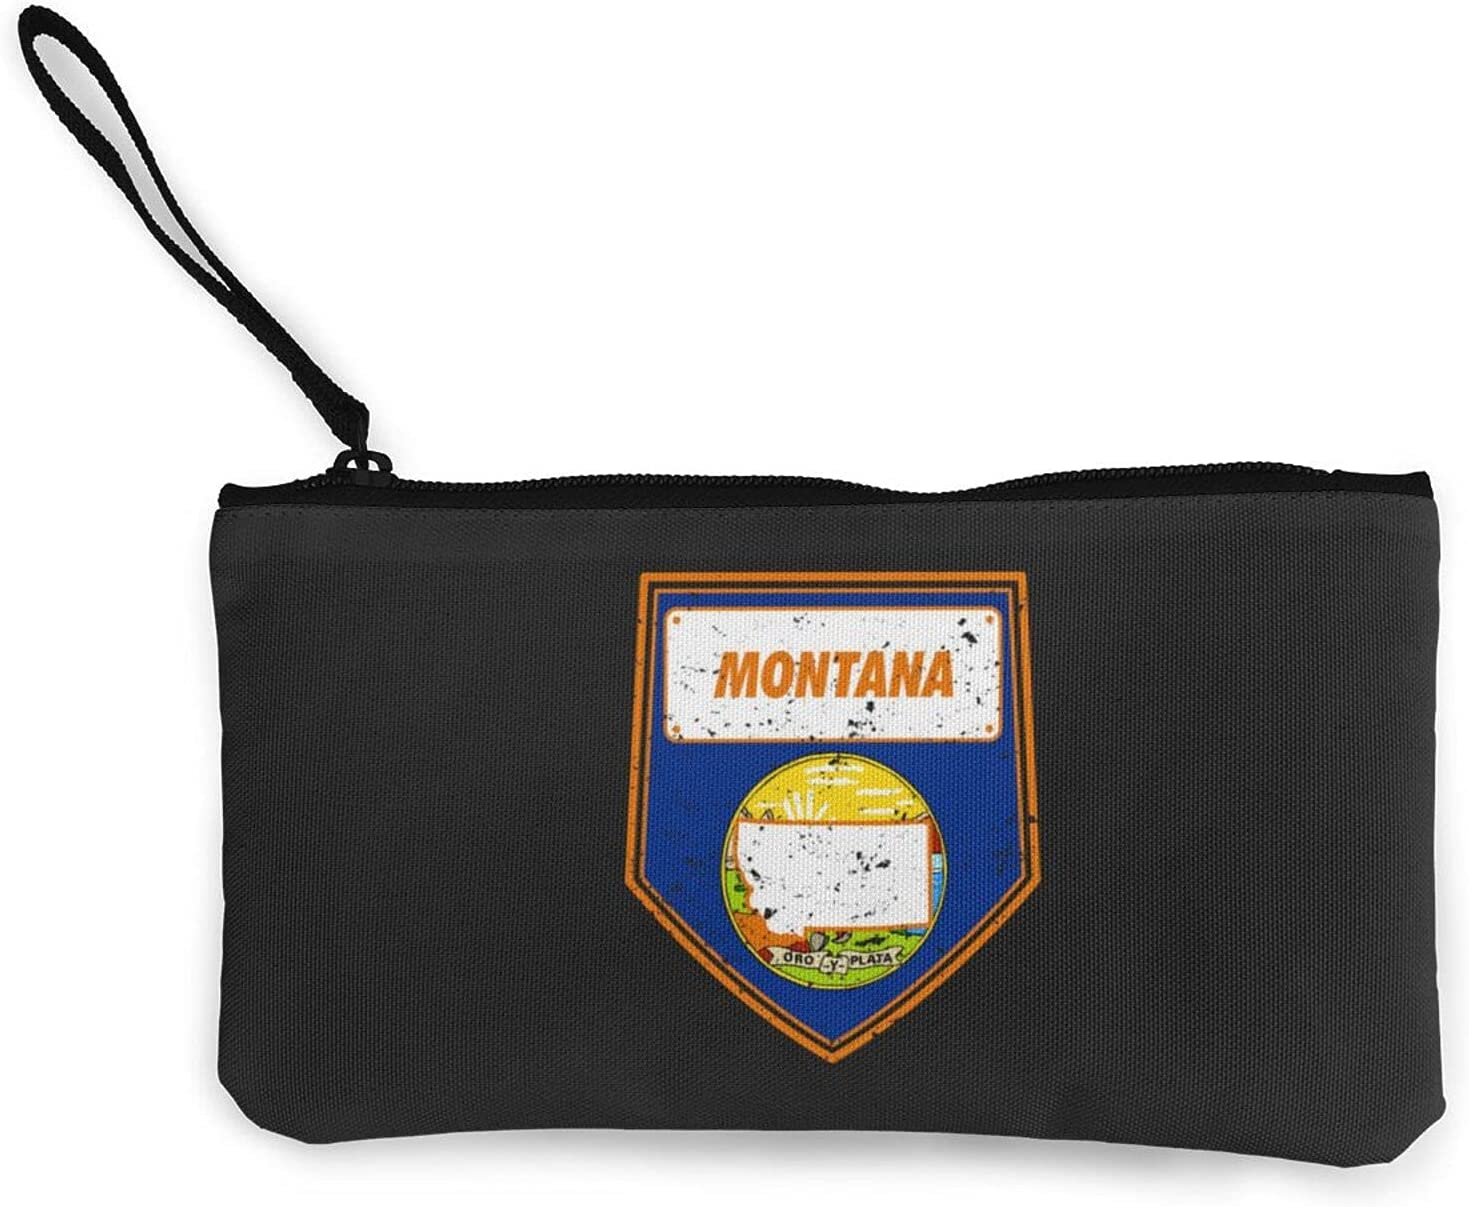 Montana Flag Design Multifunction Travel Toiletry Pouch Small Canvas Coin Wallet Bag Zipper